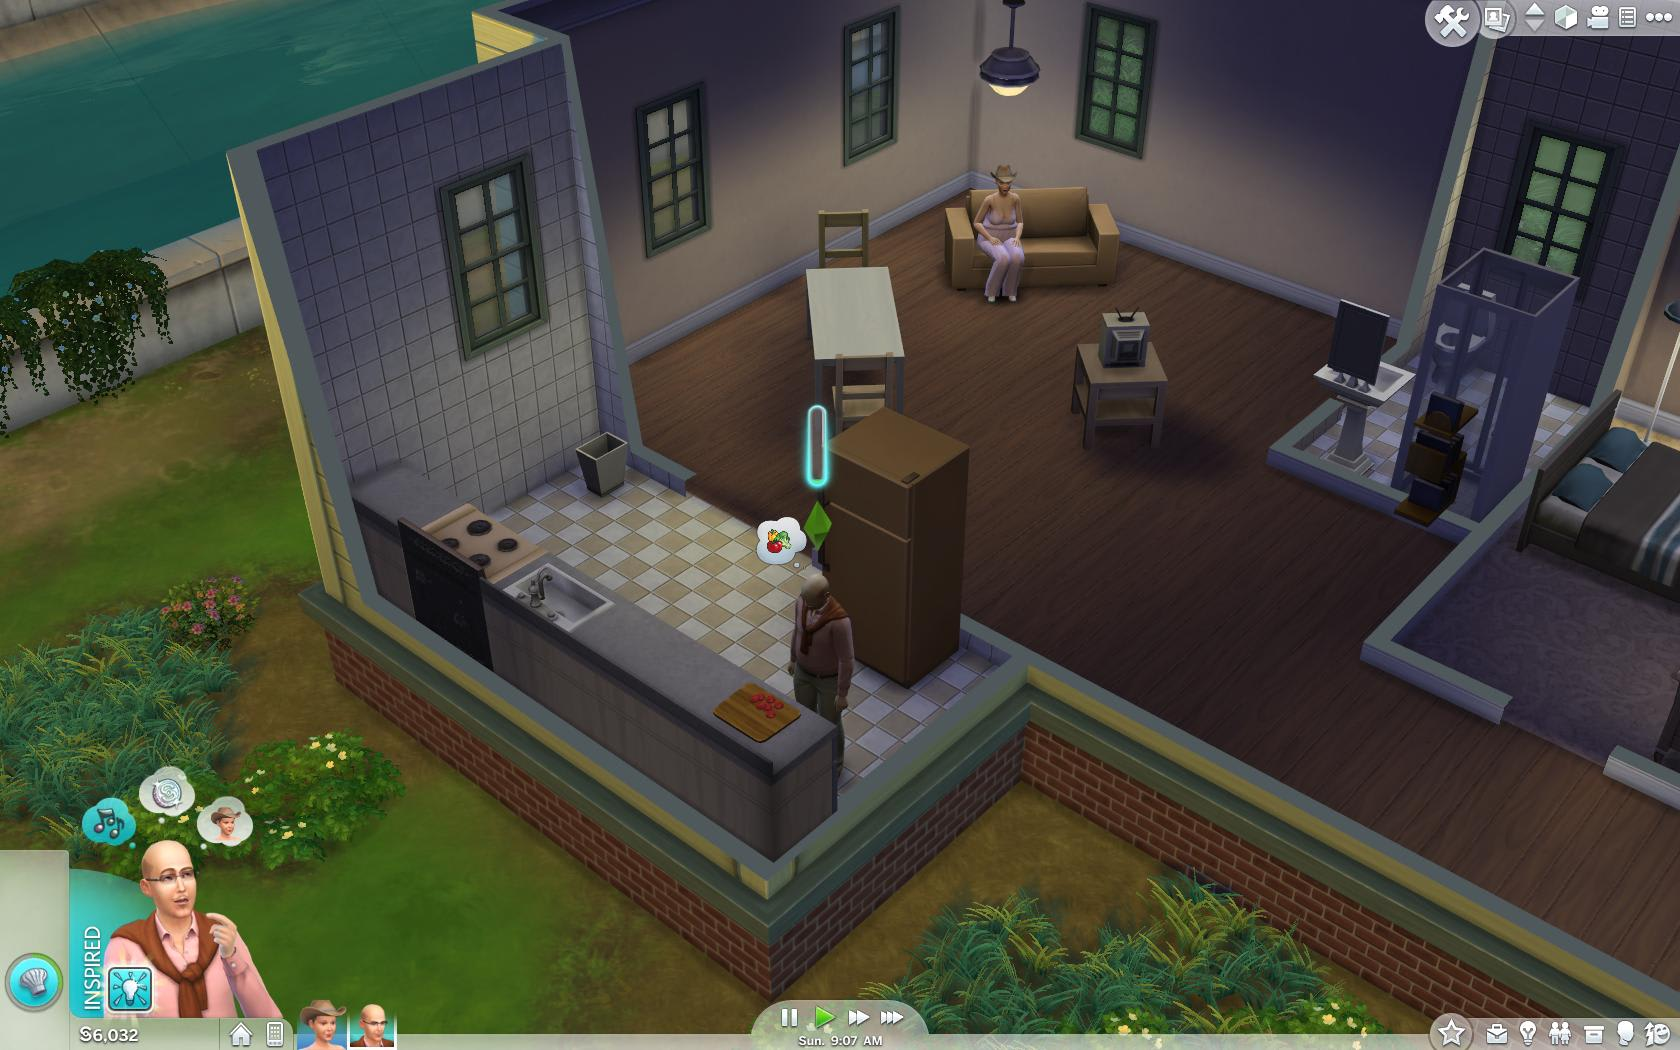 Los sims 4 descargar for Sims 4 piani di casa